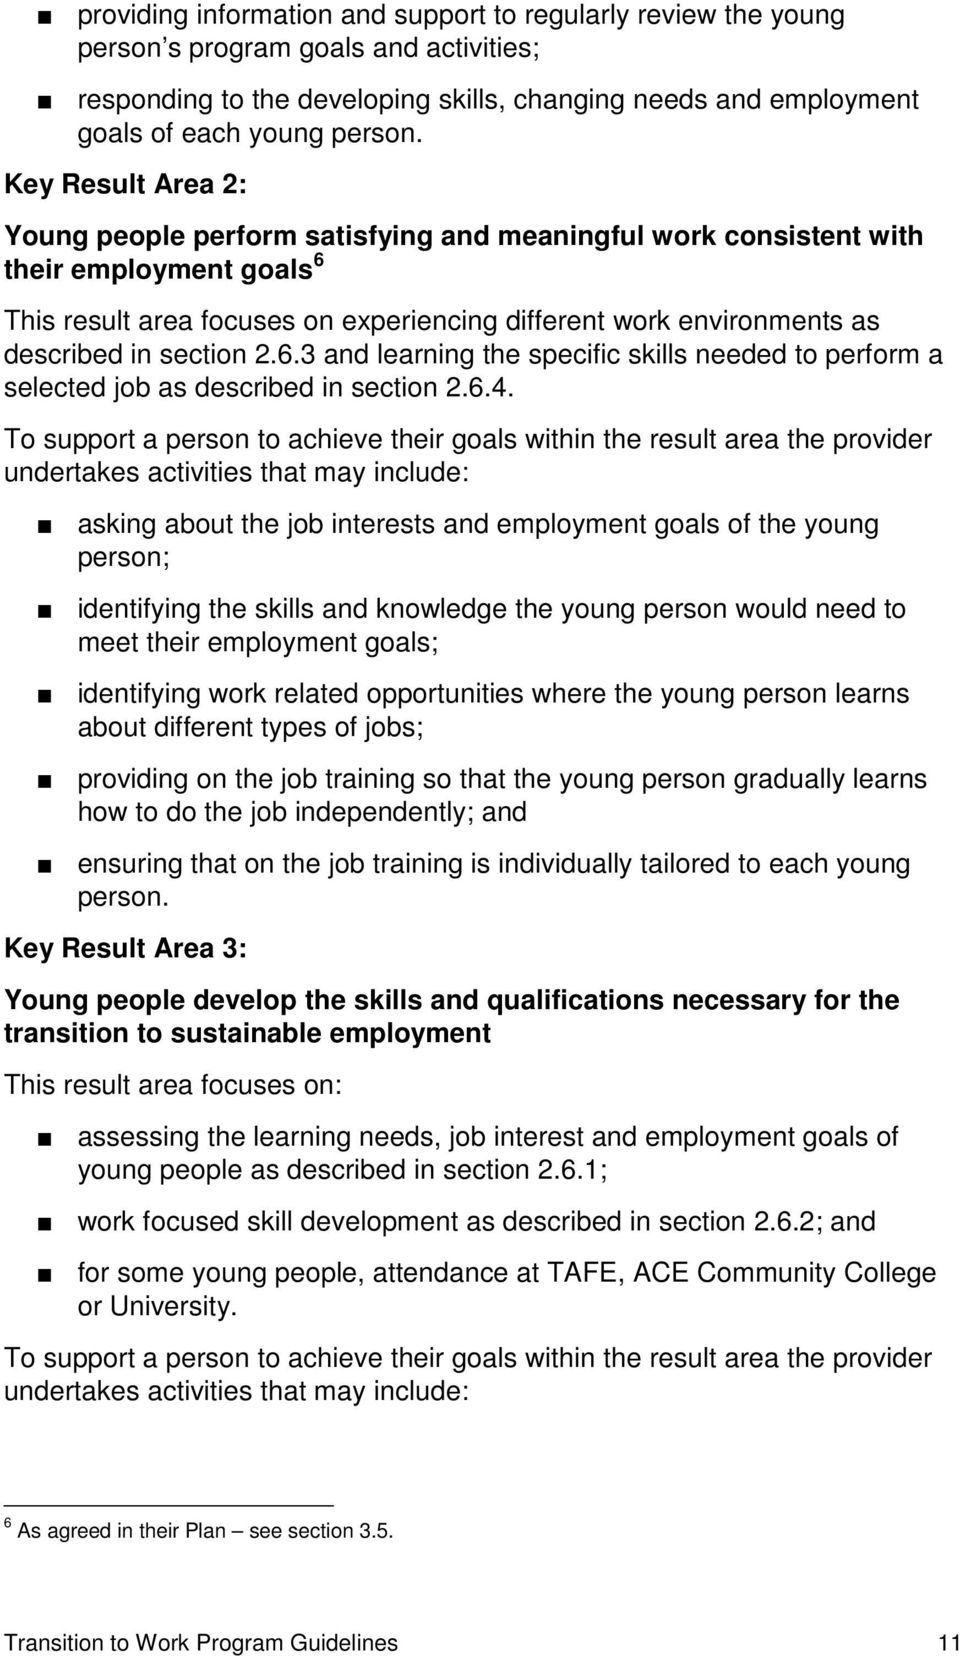 section 2.6.3 and learning the specific skills needed to perform a selected job as described in section 2.6.4.